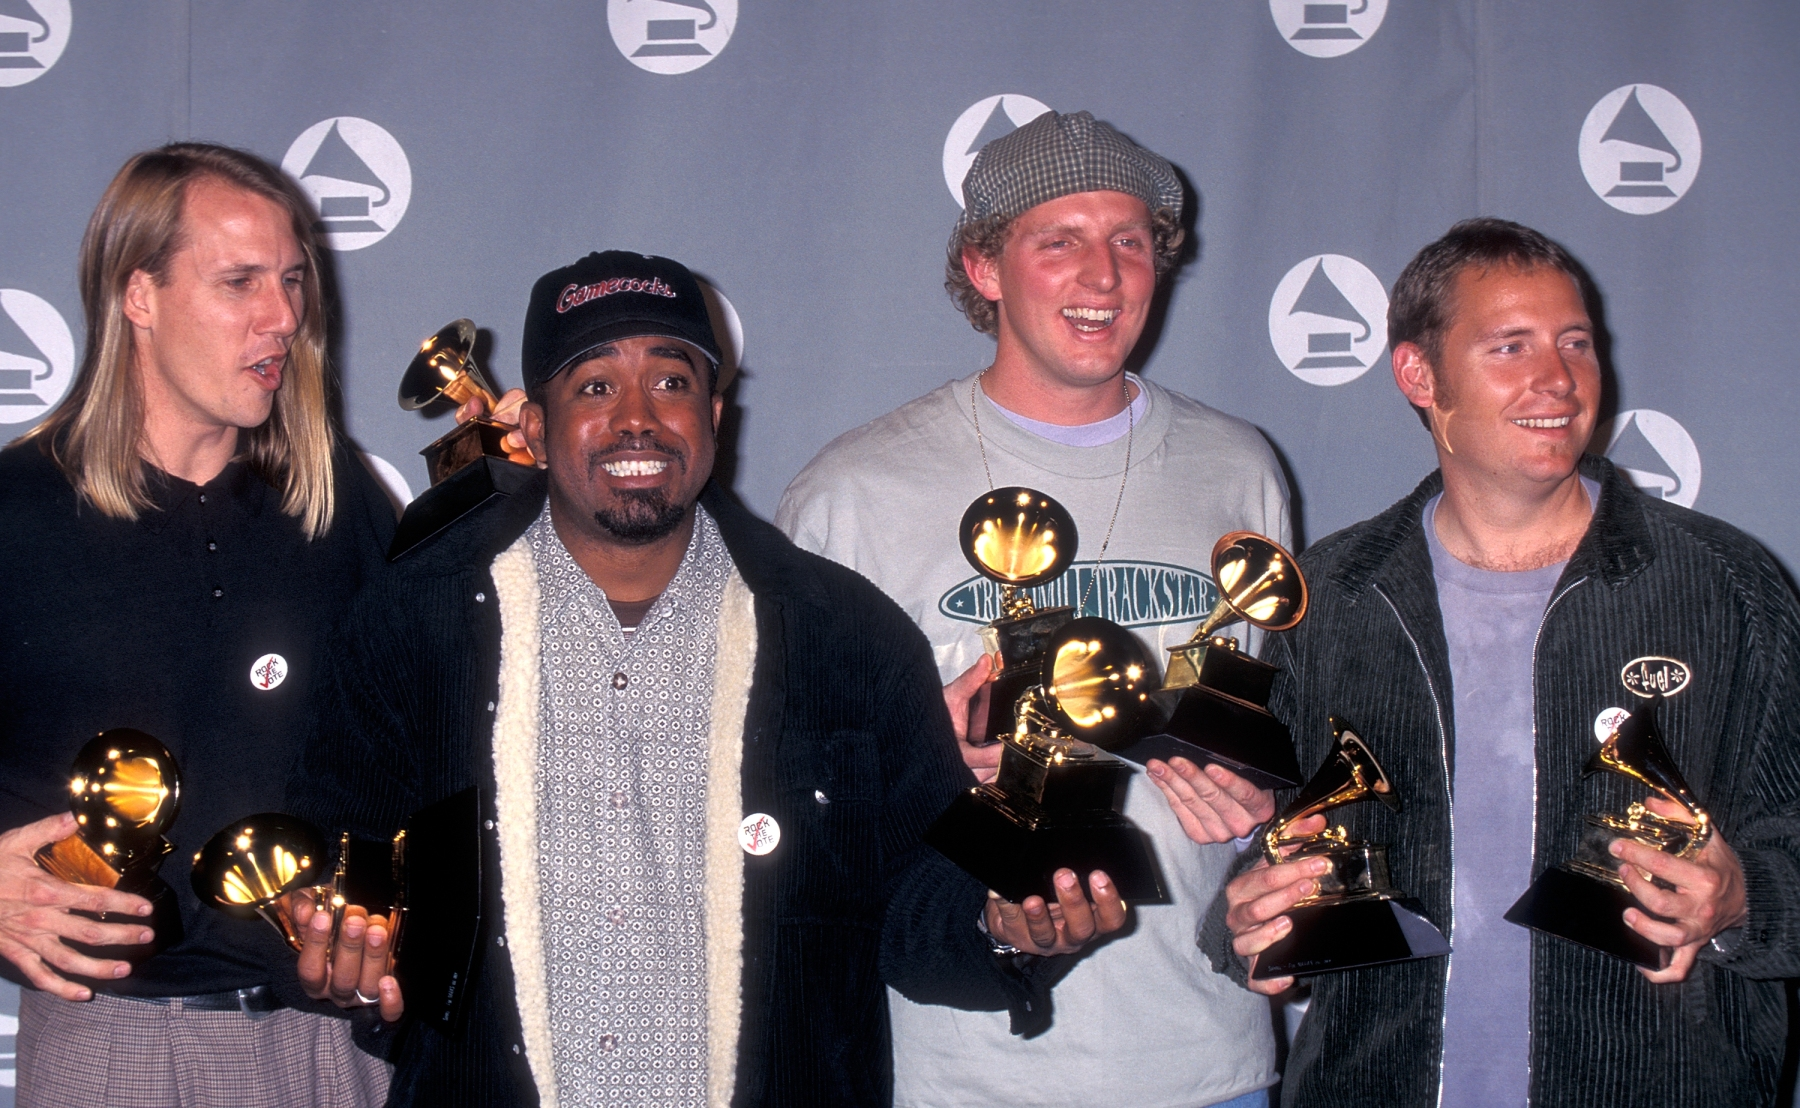 Rock band Hootie & the Blowfish attends the 38th Annual Grammy Awards on February 28, 1996 at the Shrine Auditorium in Los Angeles. (Ron Galella, Ltd./WireImage)